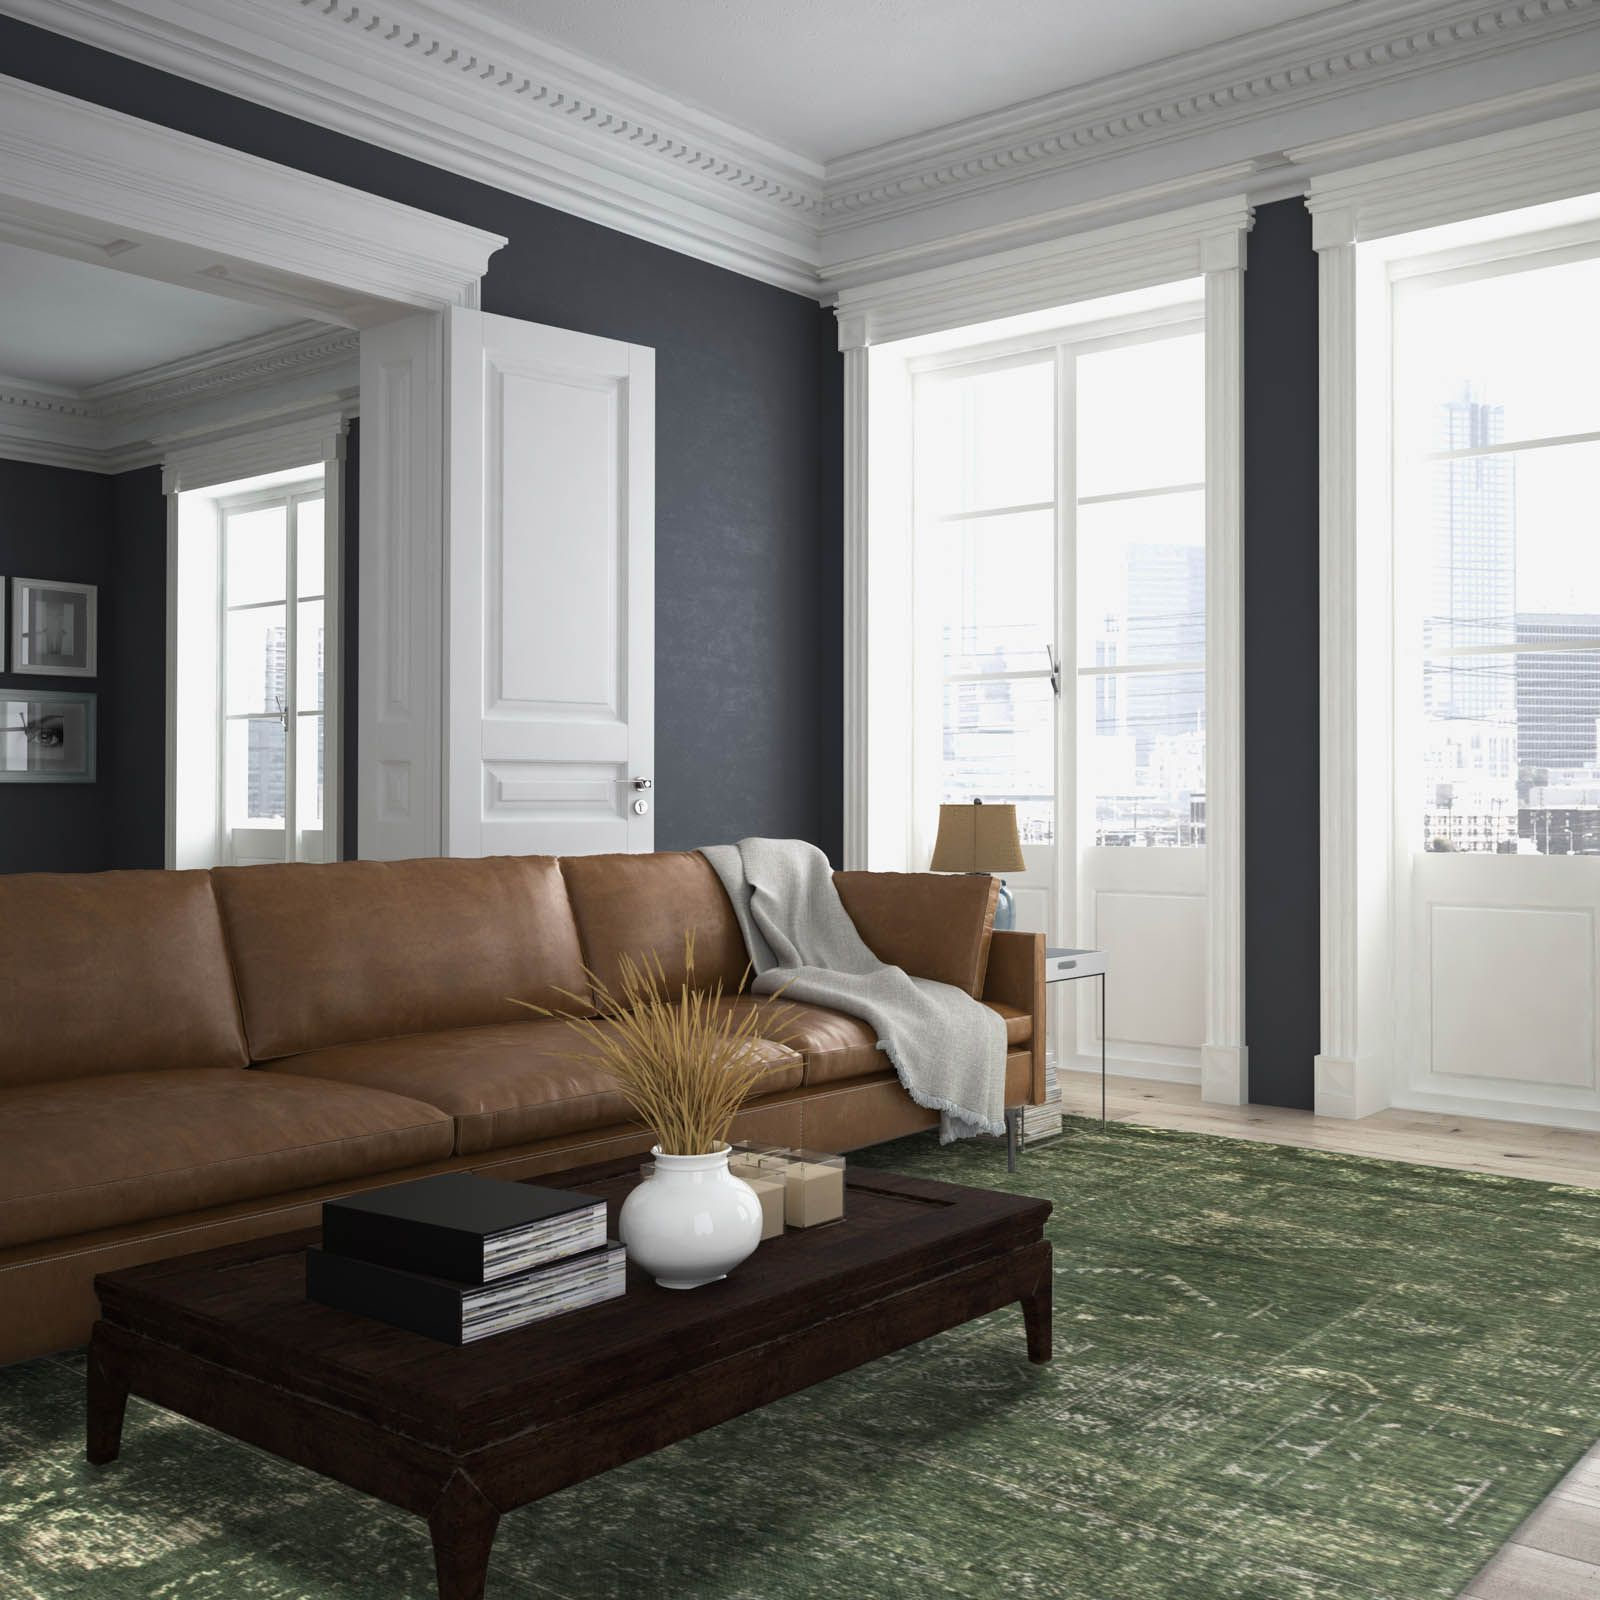 Popular Louis De Poortere Fading World Rugs 8271 Perrier Green For Cromwell Modular Sectional Sofas (View 15 of 25)